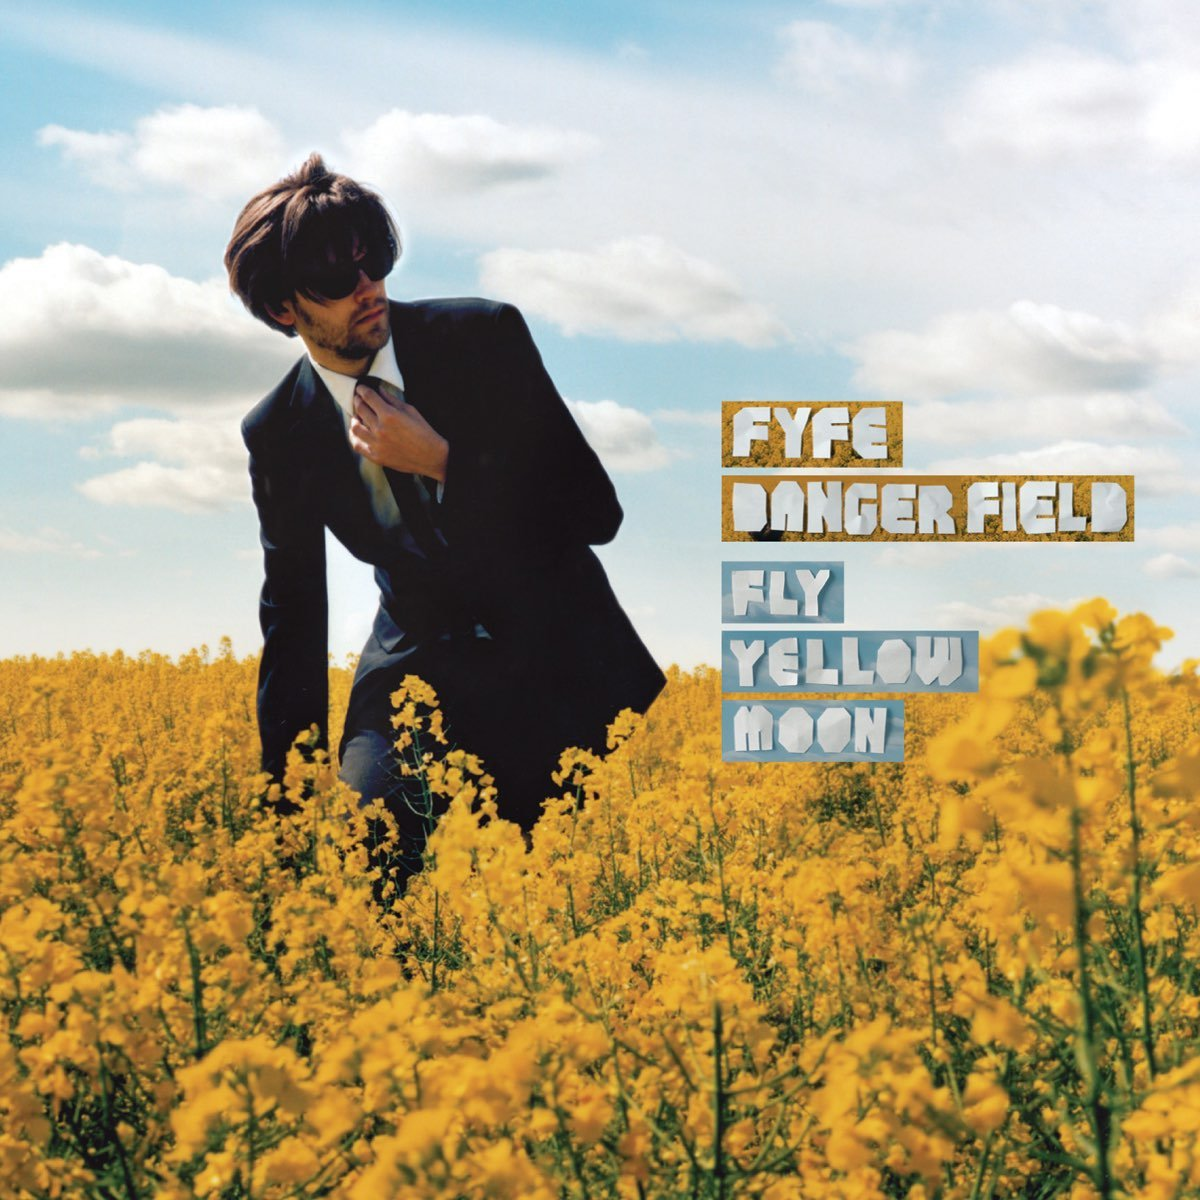 Fyfe Dangerfield, Fly Yellow Moon